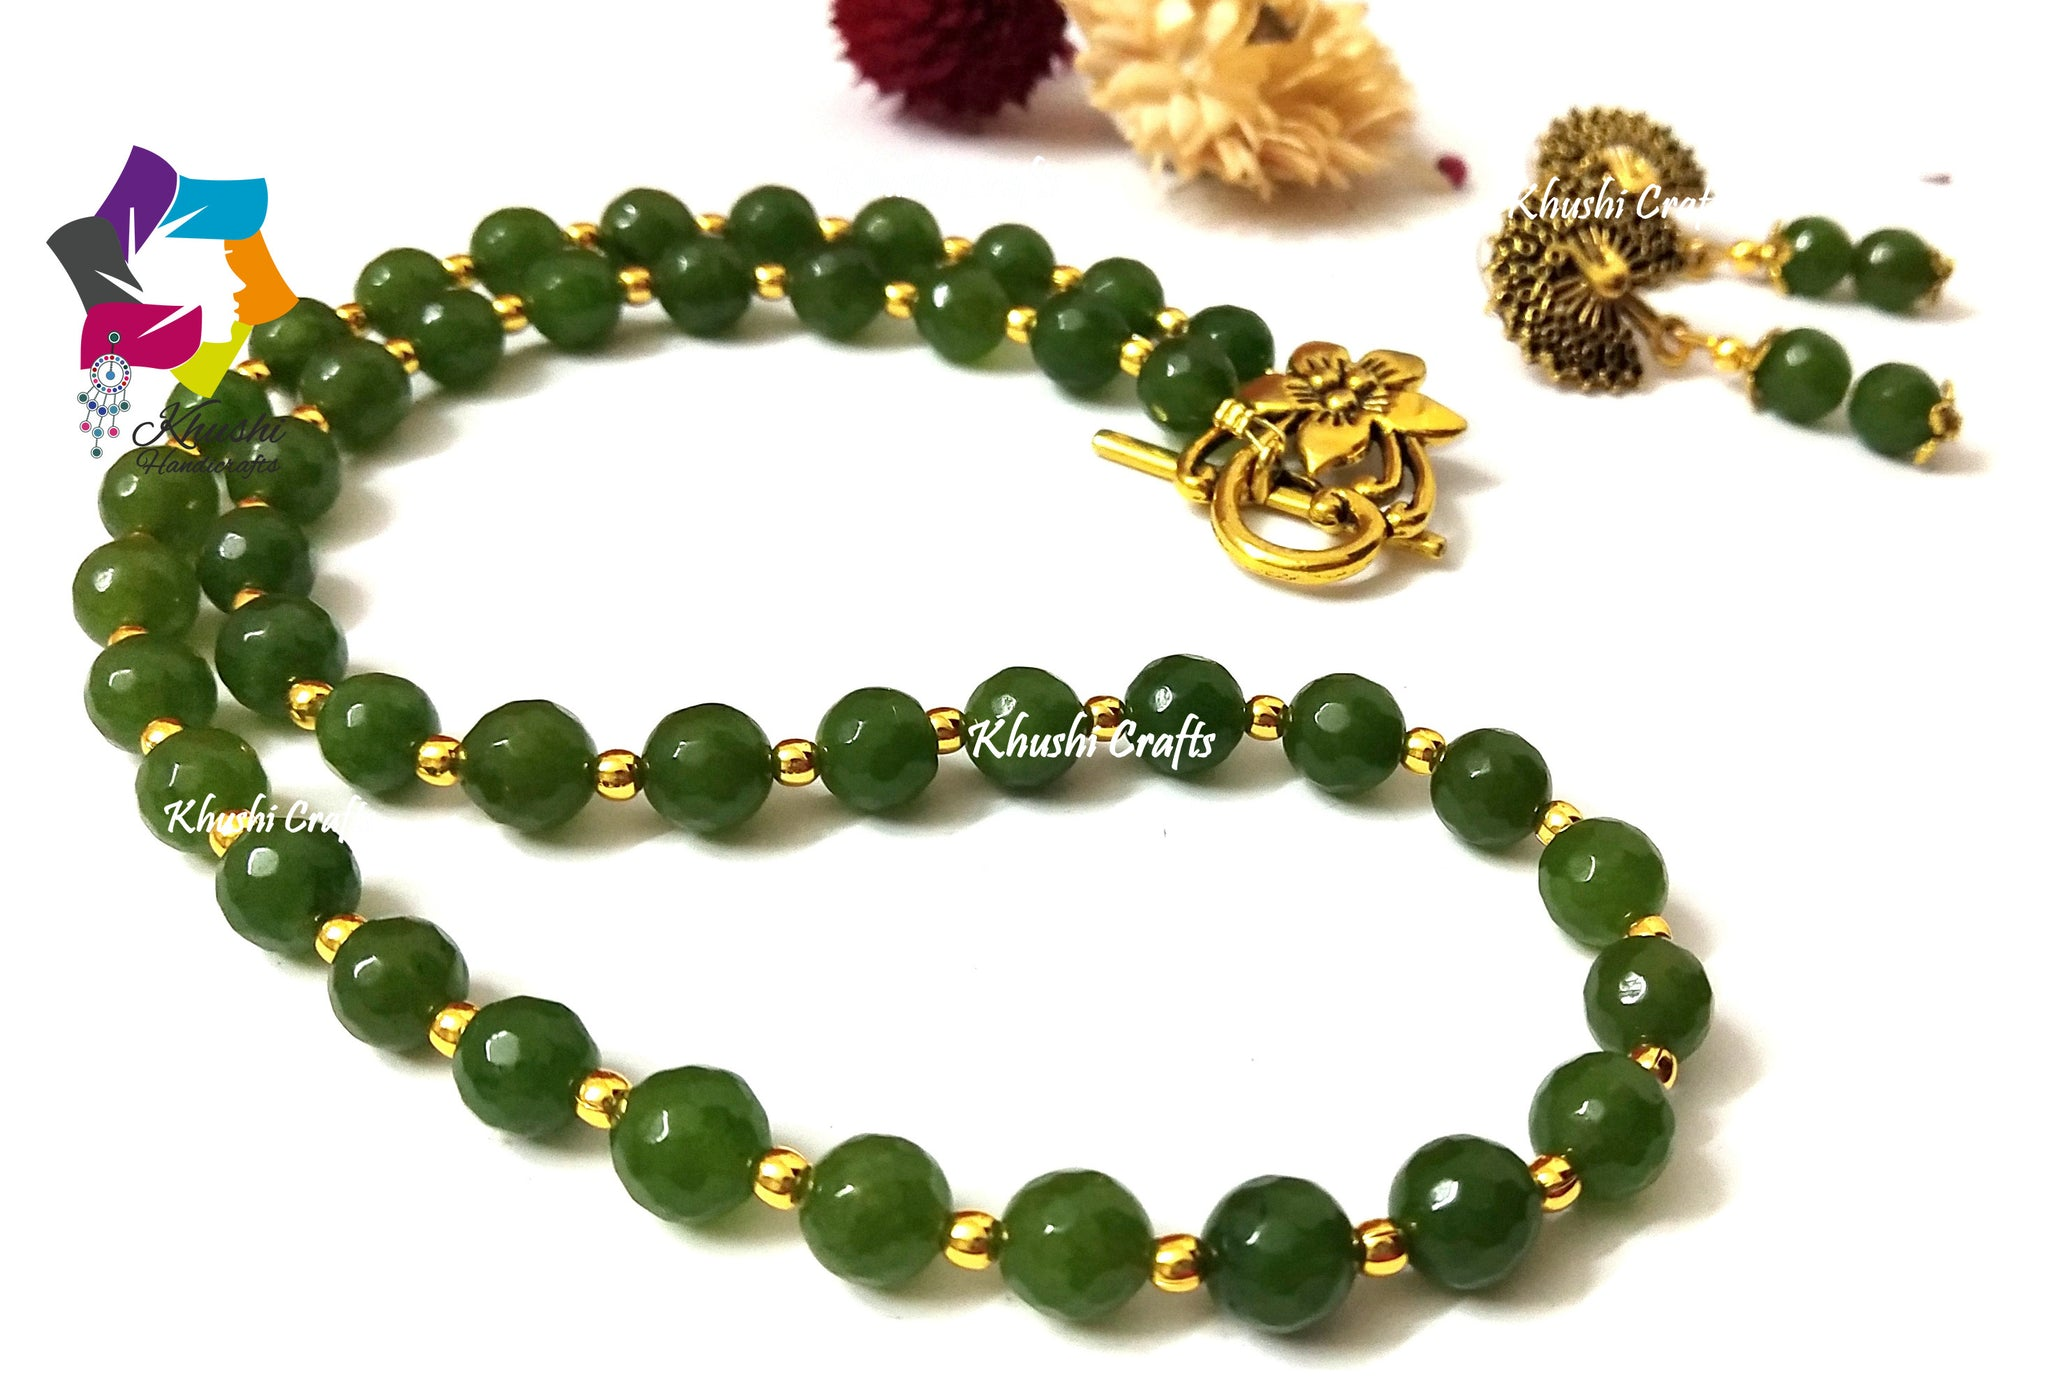 Green agate handmade necklace